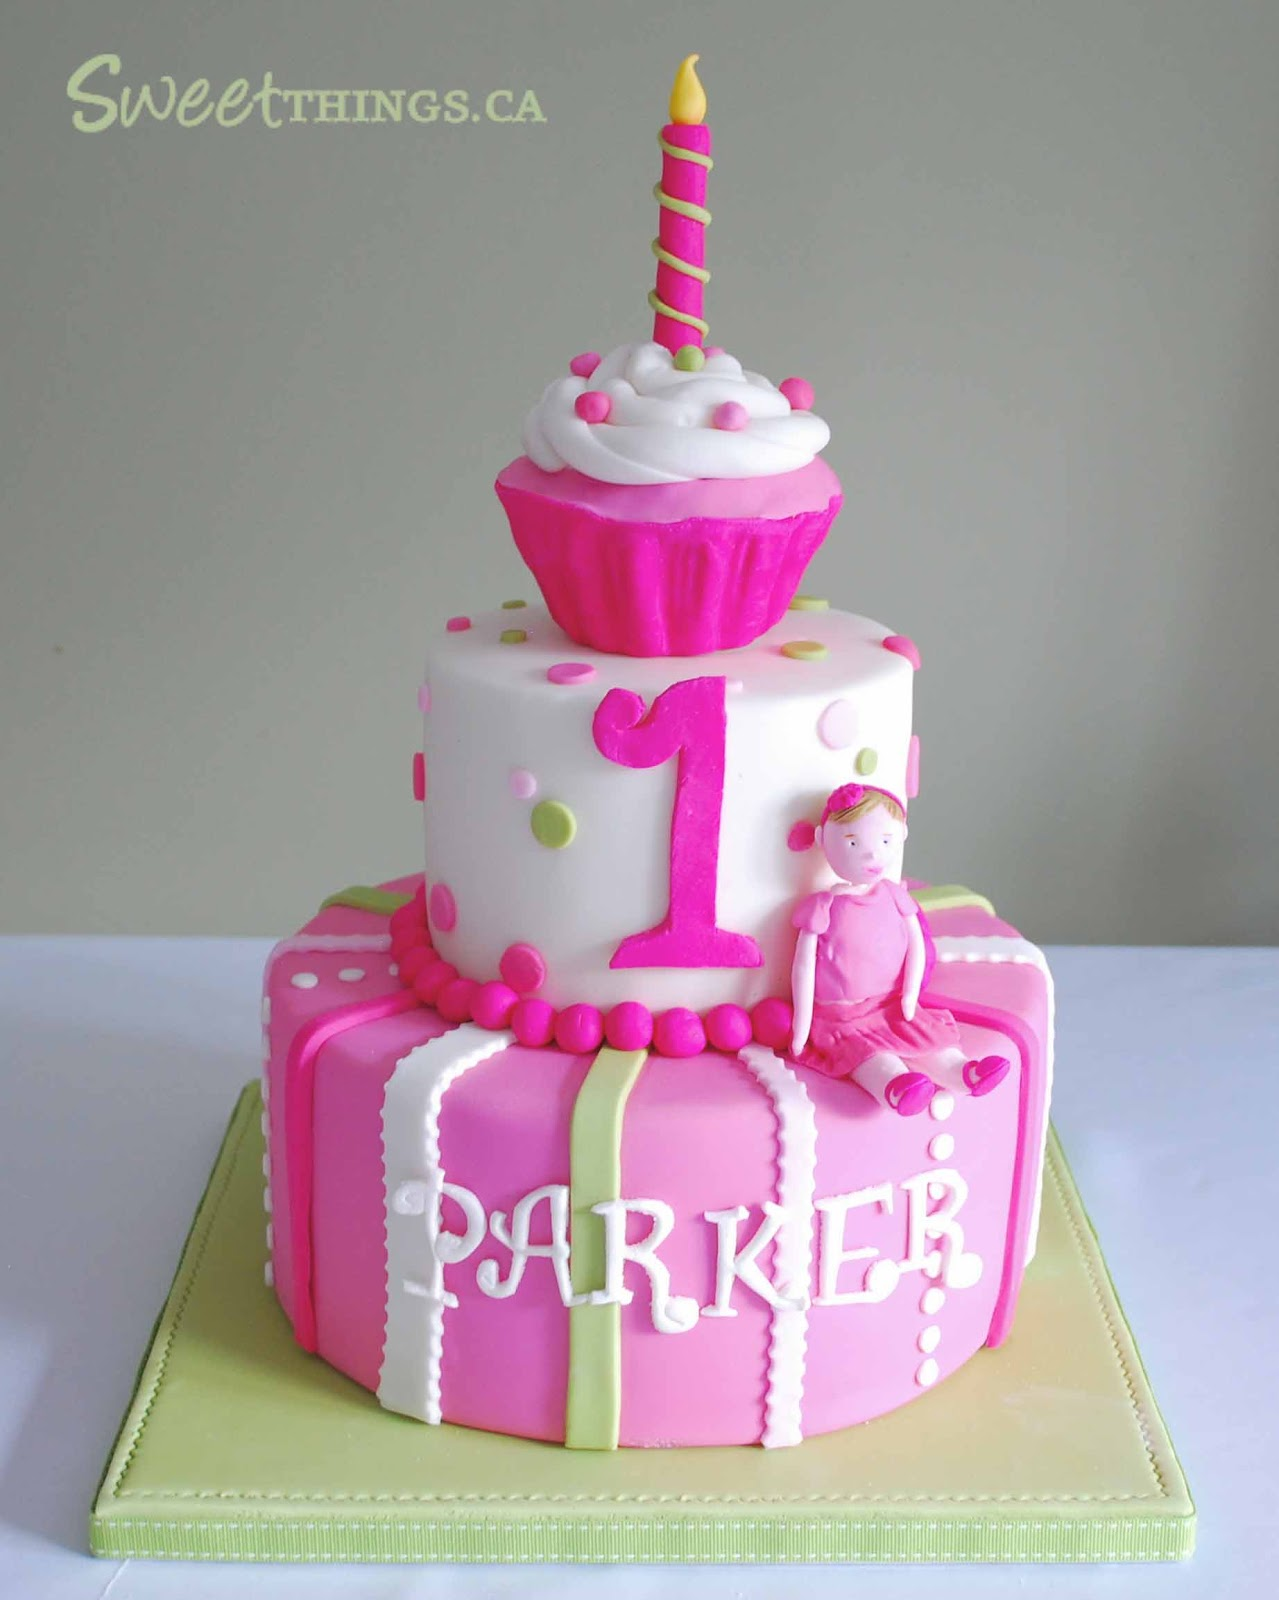 Pics Of Birthday Cakes For Baby Girl : SweetThings: Colorful 1st Birthday Cake